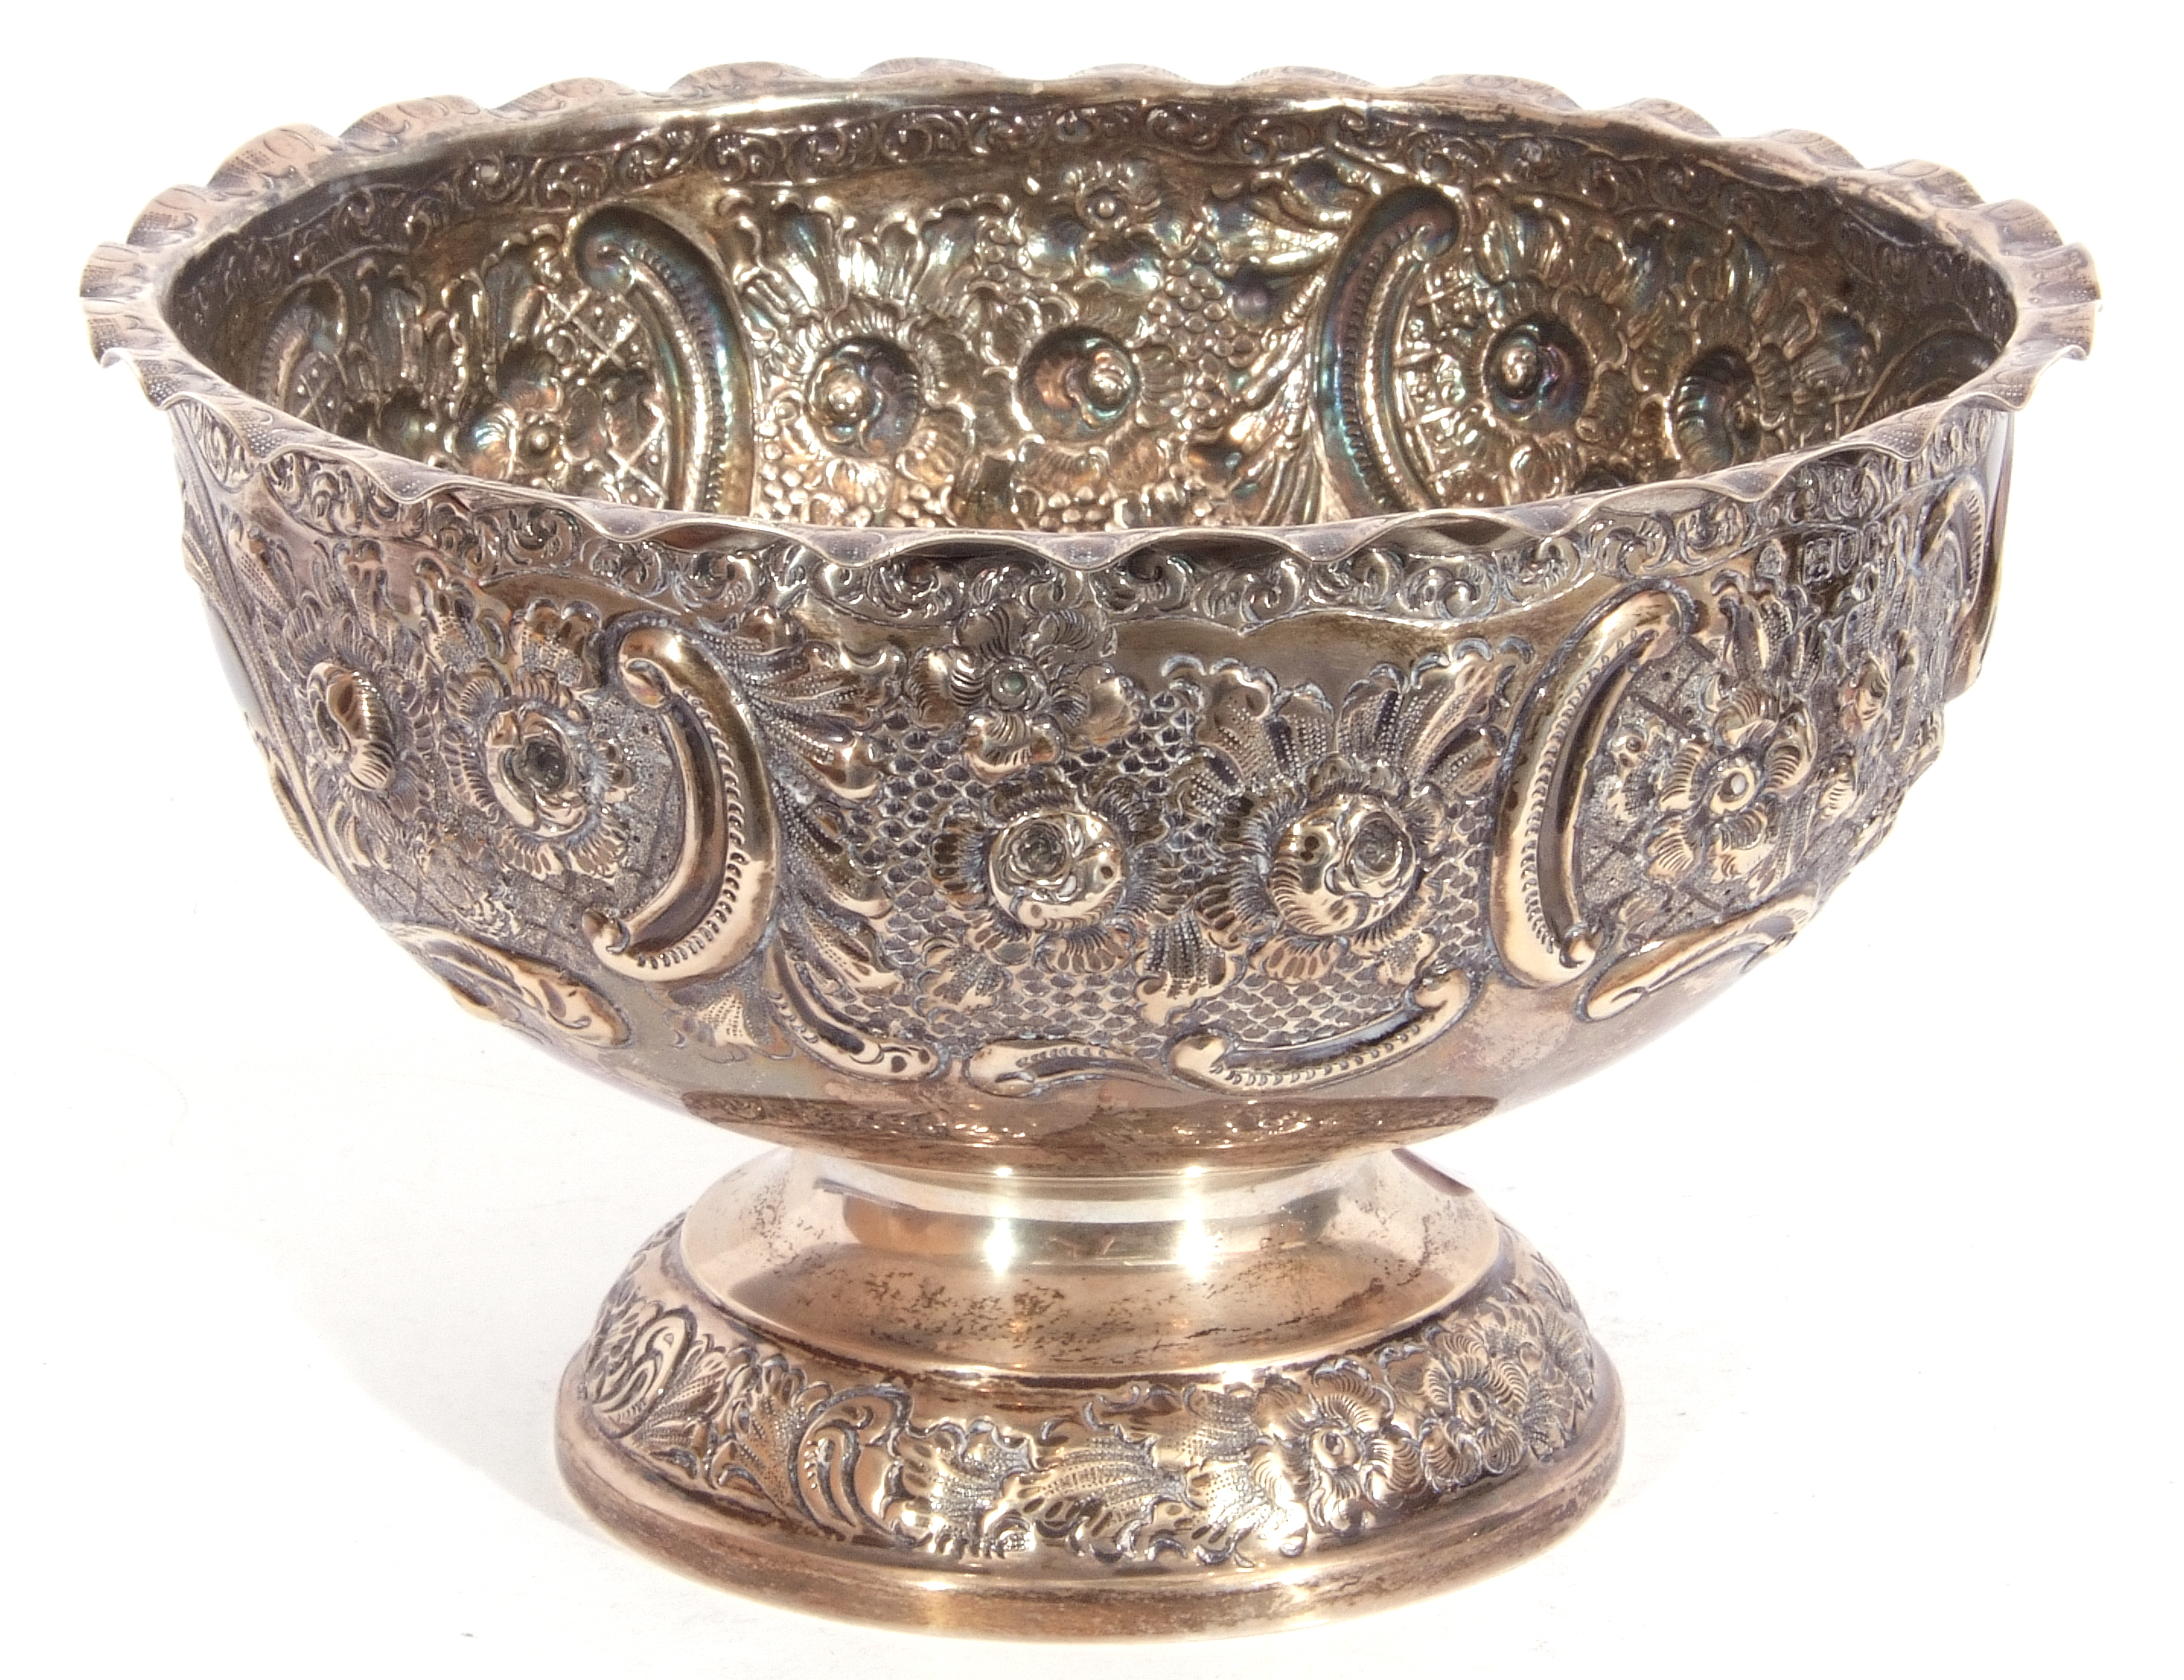 Late Victorian silver rose bowl raised on a pedestal foot and having an all over chased leaf and - Image 3 of 4